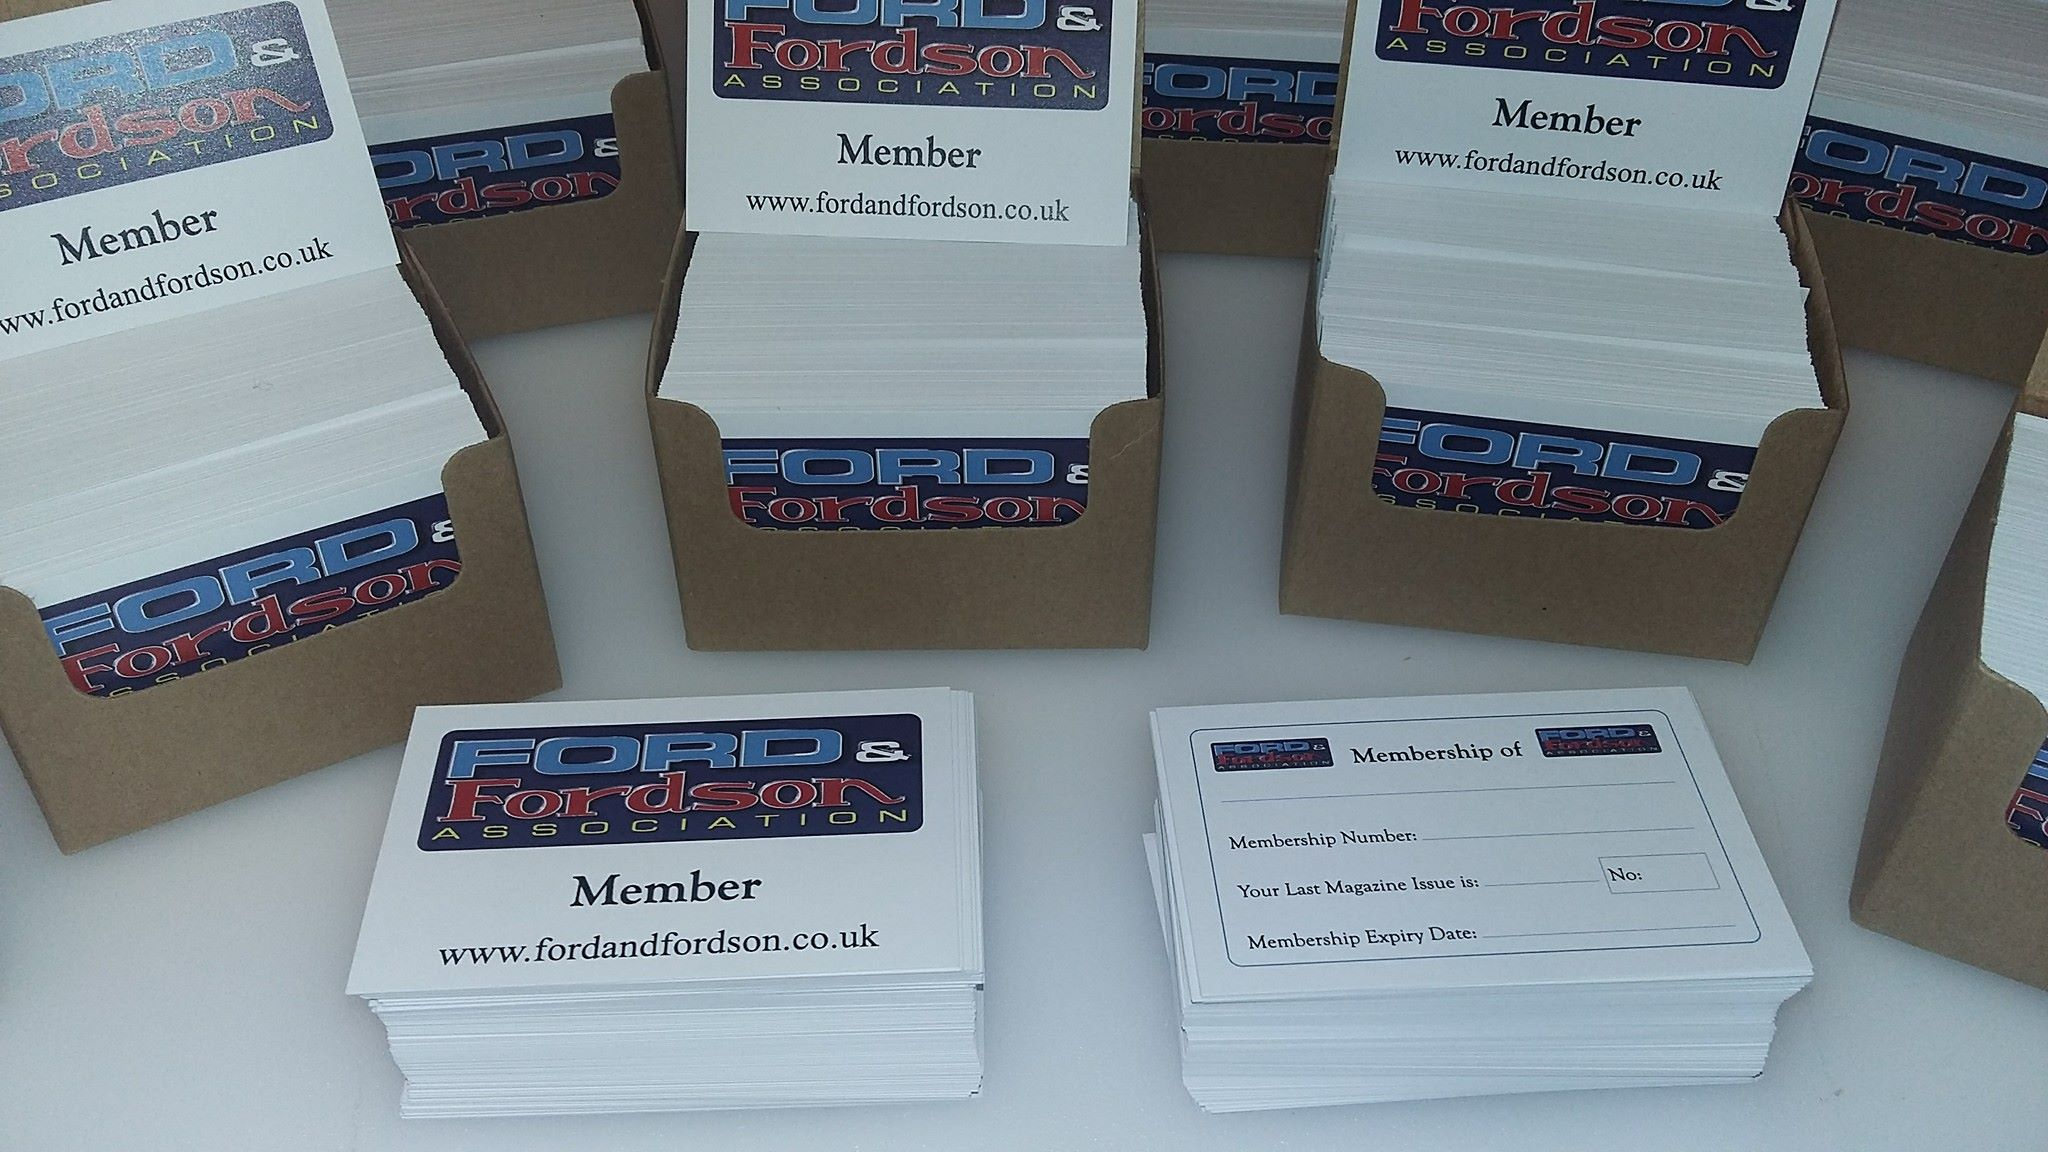 Membership / Appointment cards